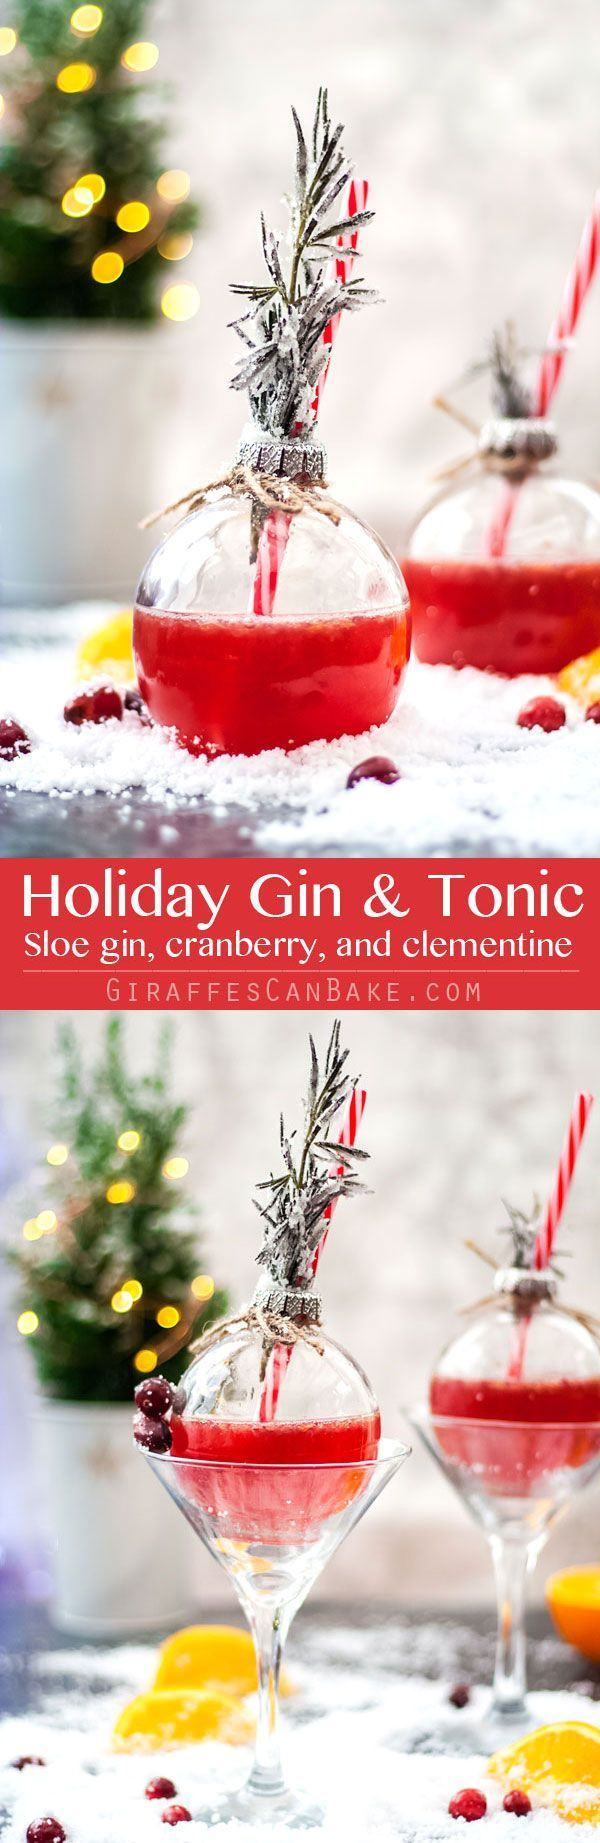 This Holiday Gin and Tonic is full of the festive flavours of cranberry and clementine.